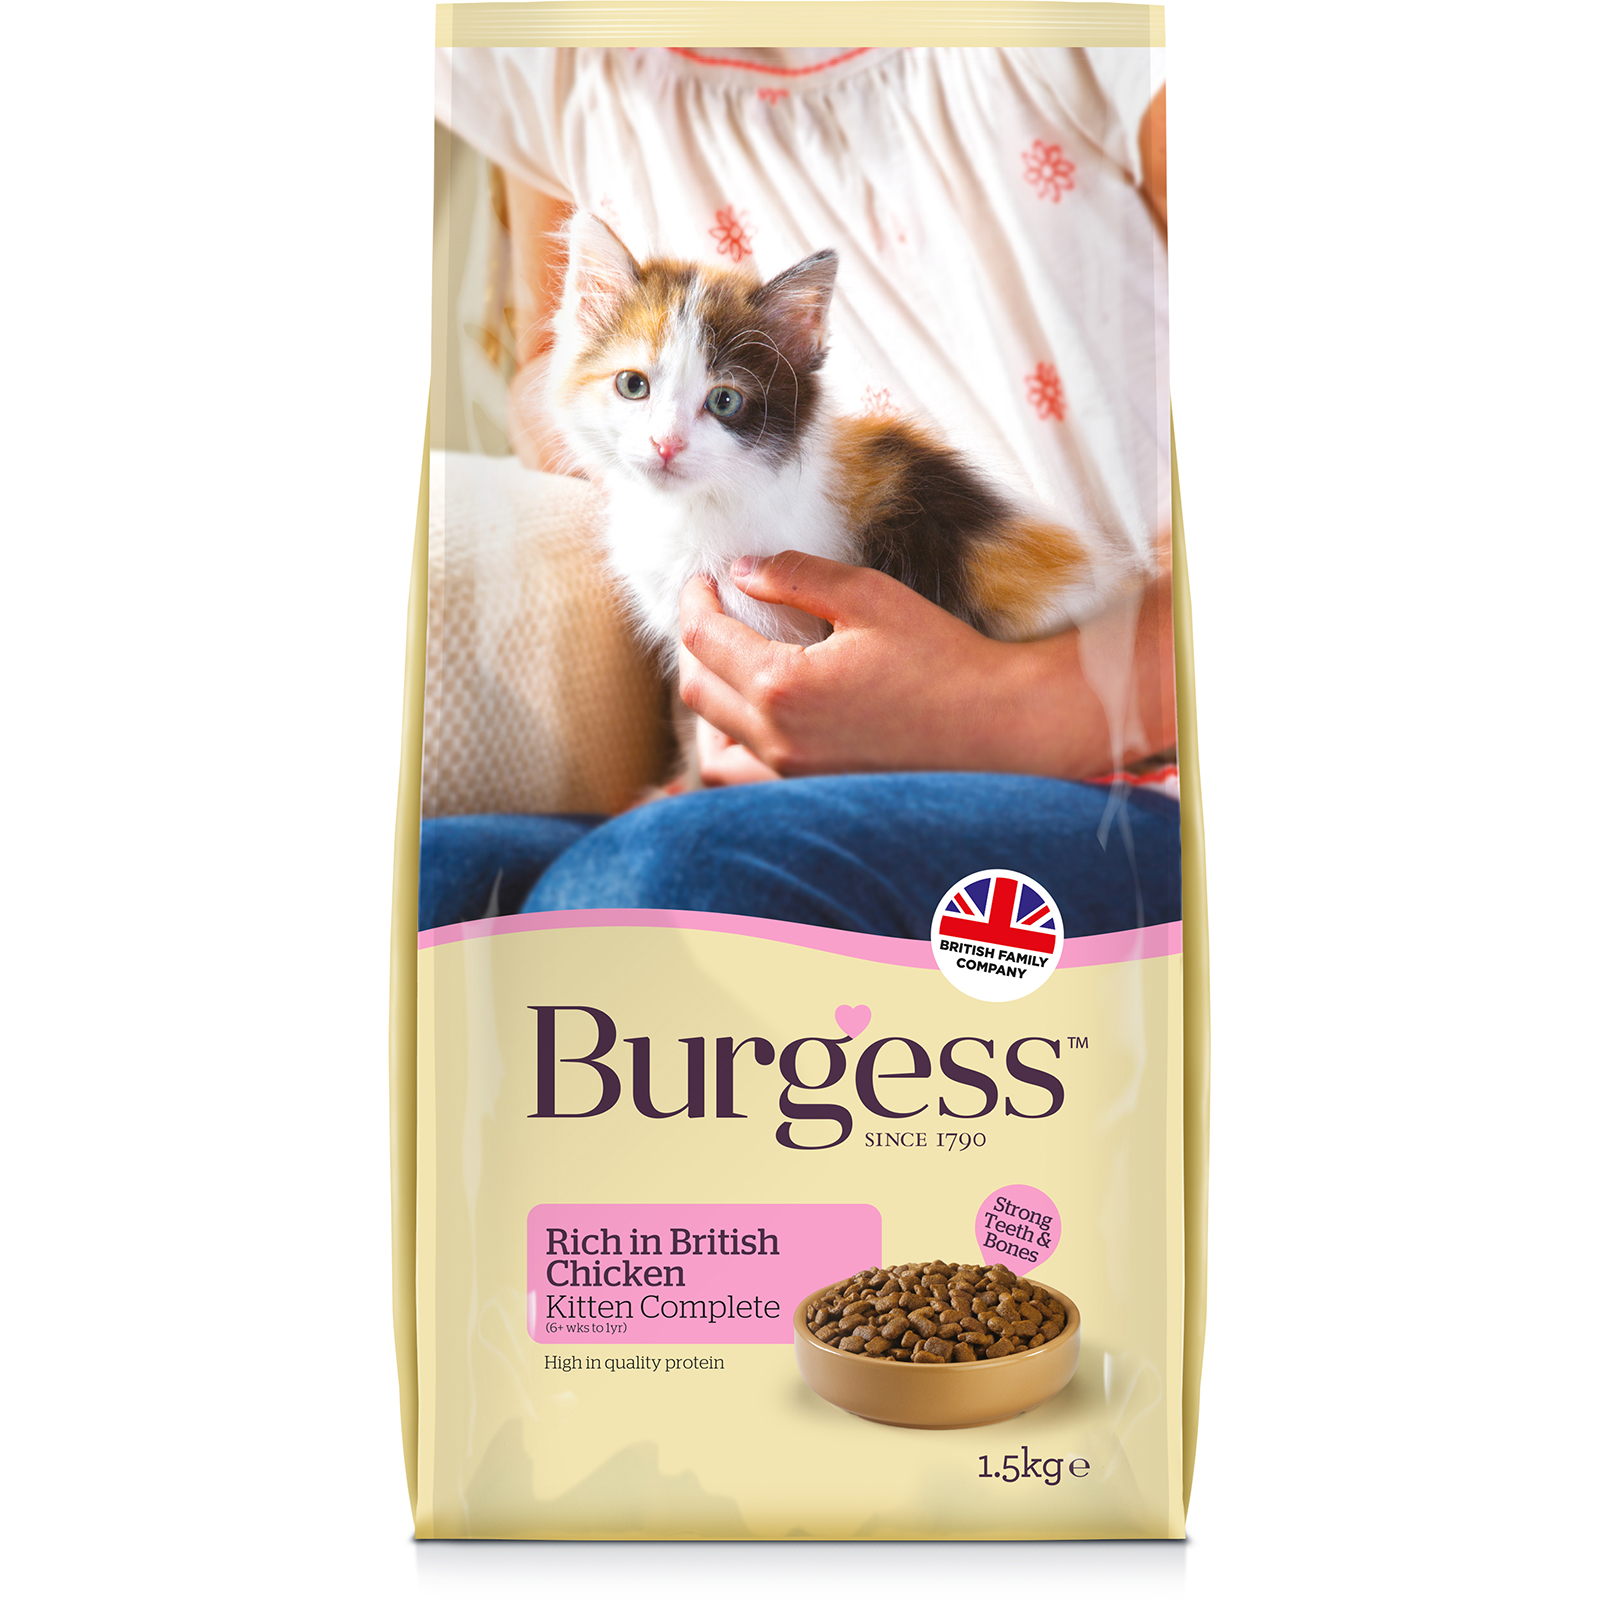 Burgess Kitten with Chicken (1.5kg)